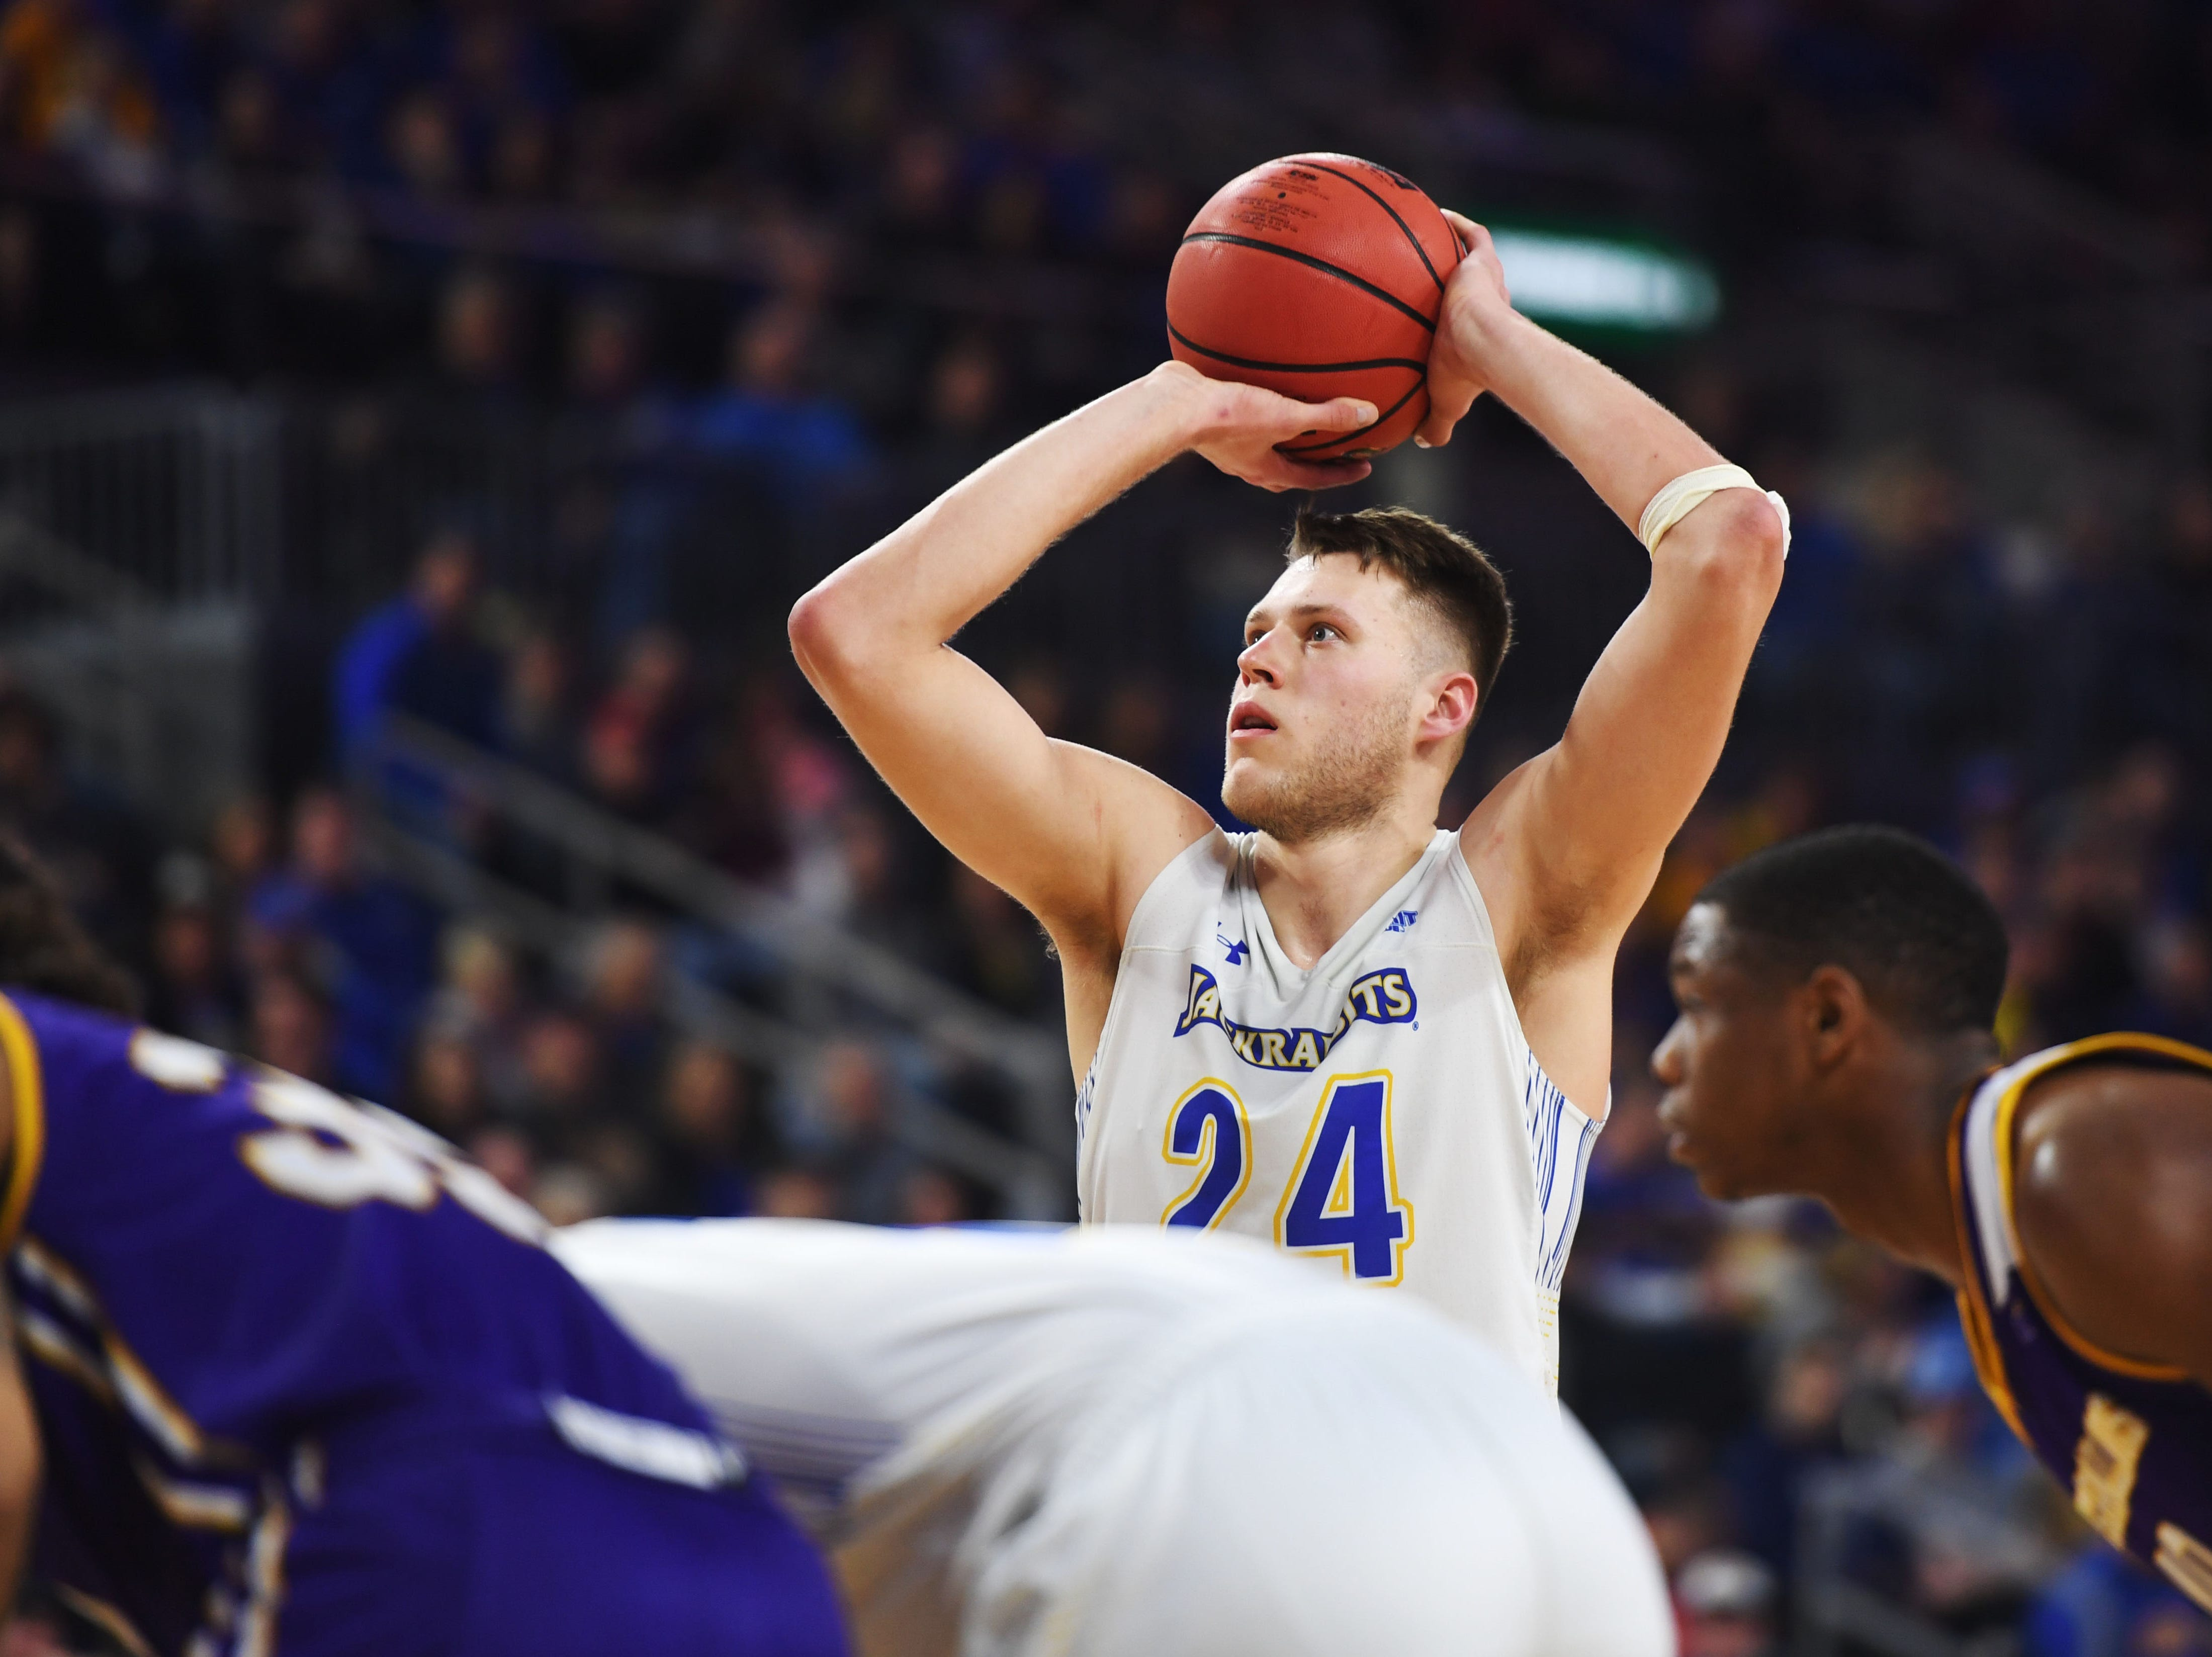 SDSU's Mike Daum shoots a free throw against Western Illinois Saturday, March 9, in the Summit League tournament at the Denny Sanford Premier Center in Sioux Falls.